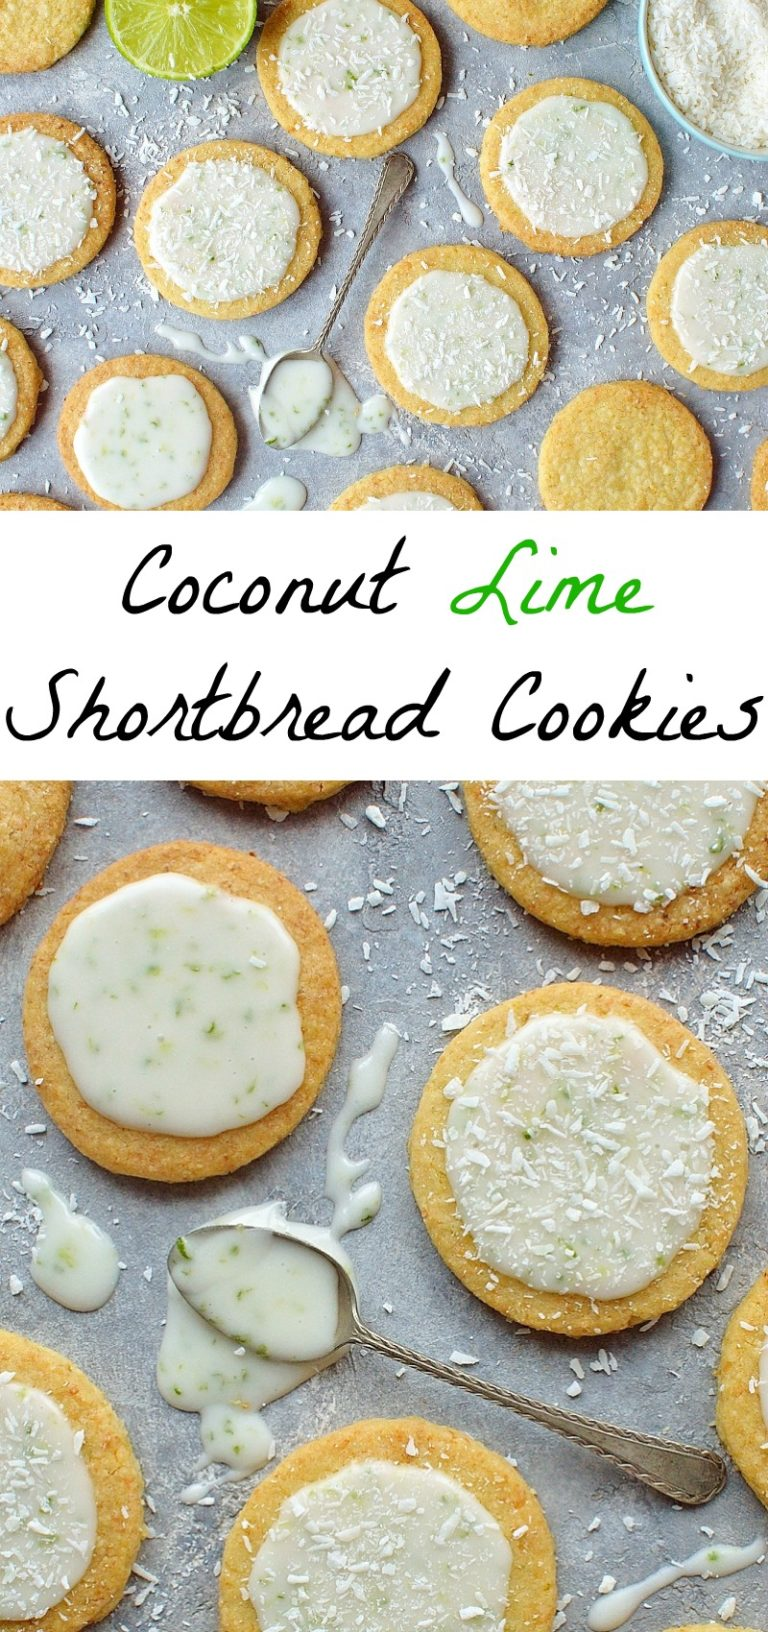 Coconut lime shortbread cookies collage